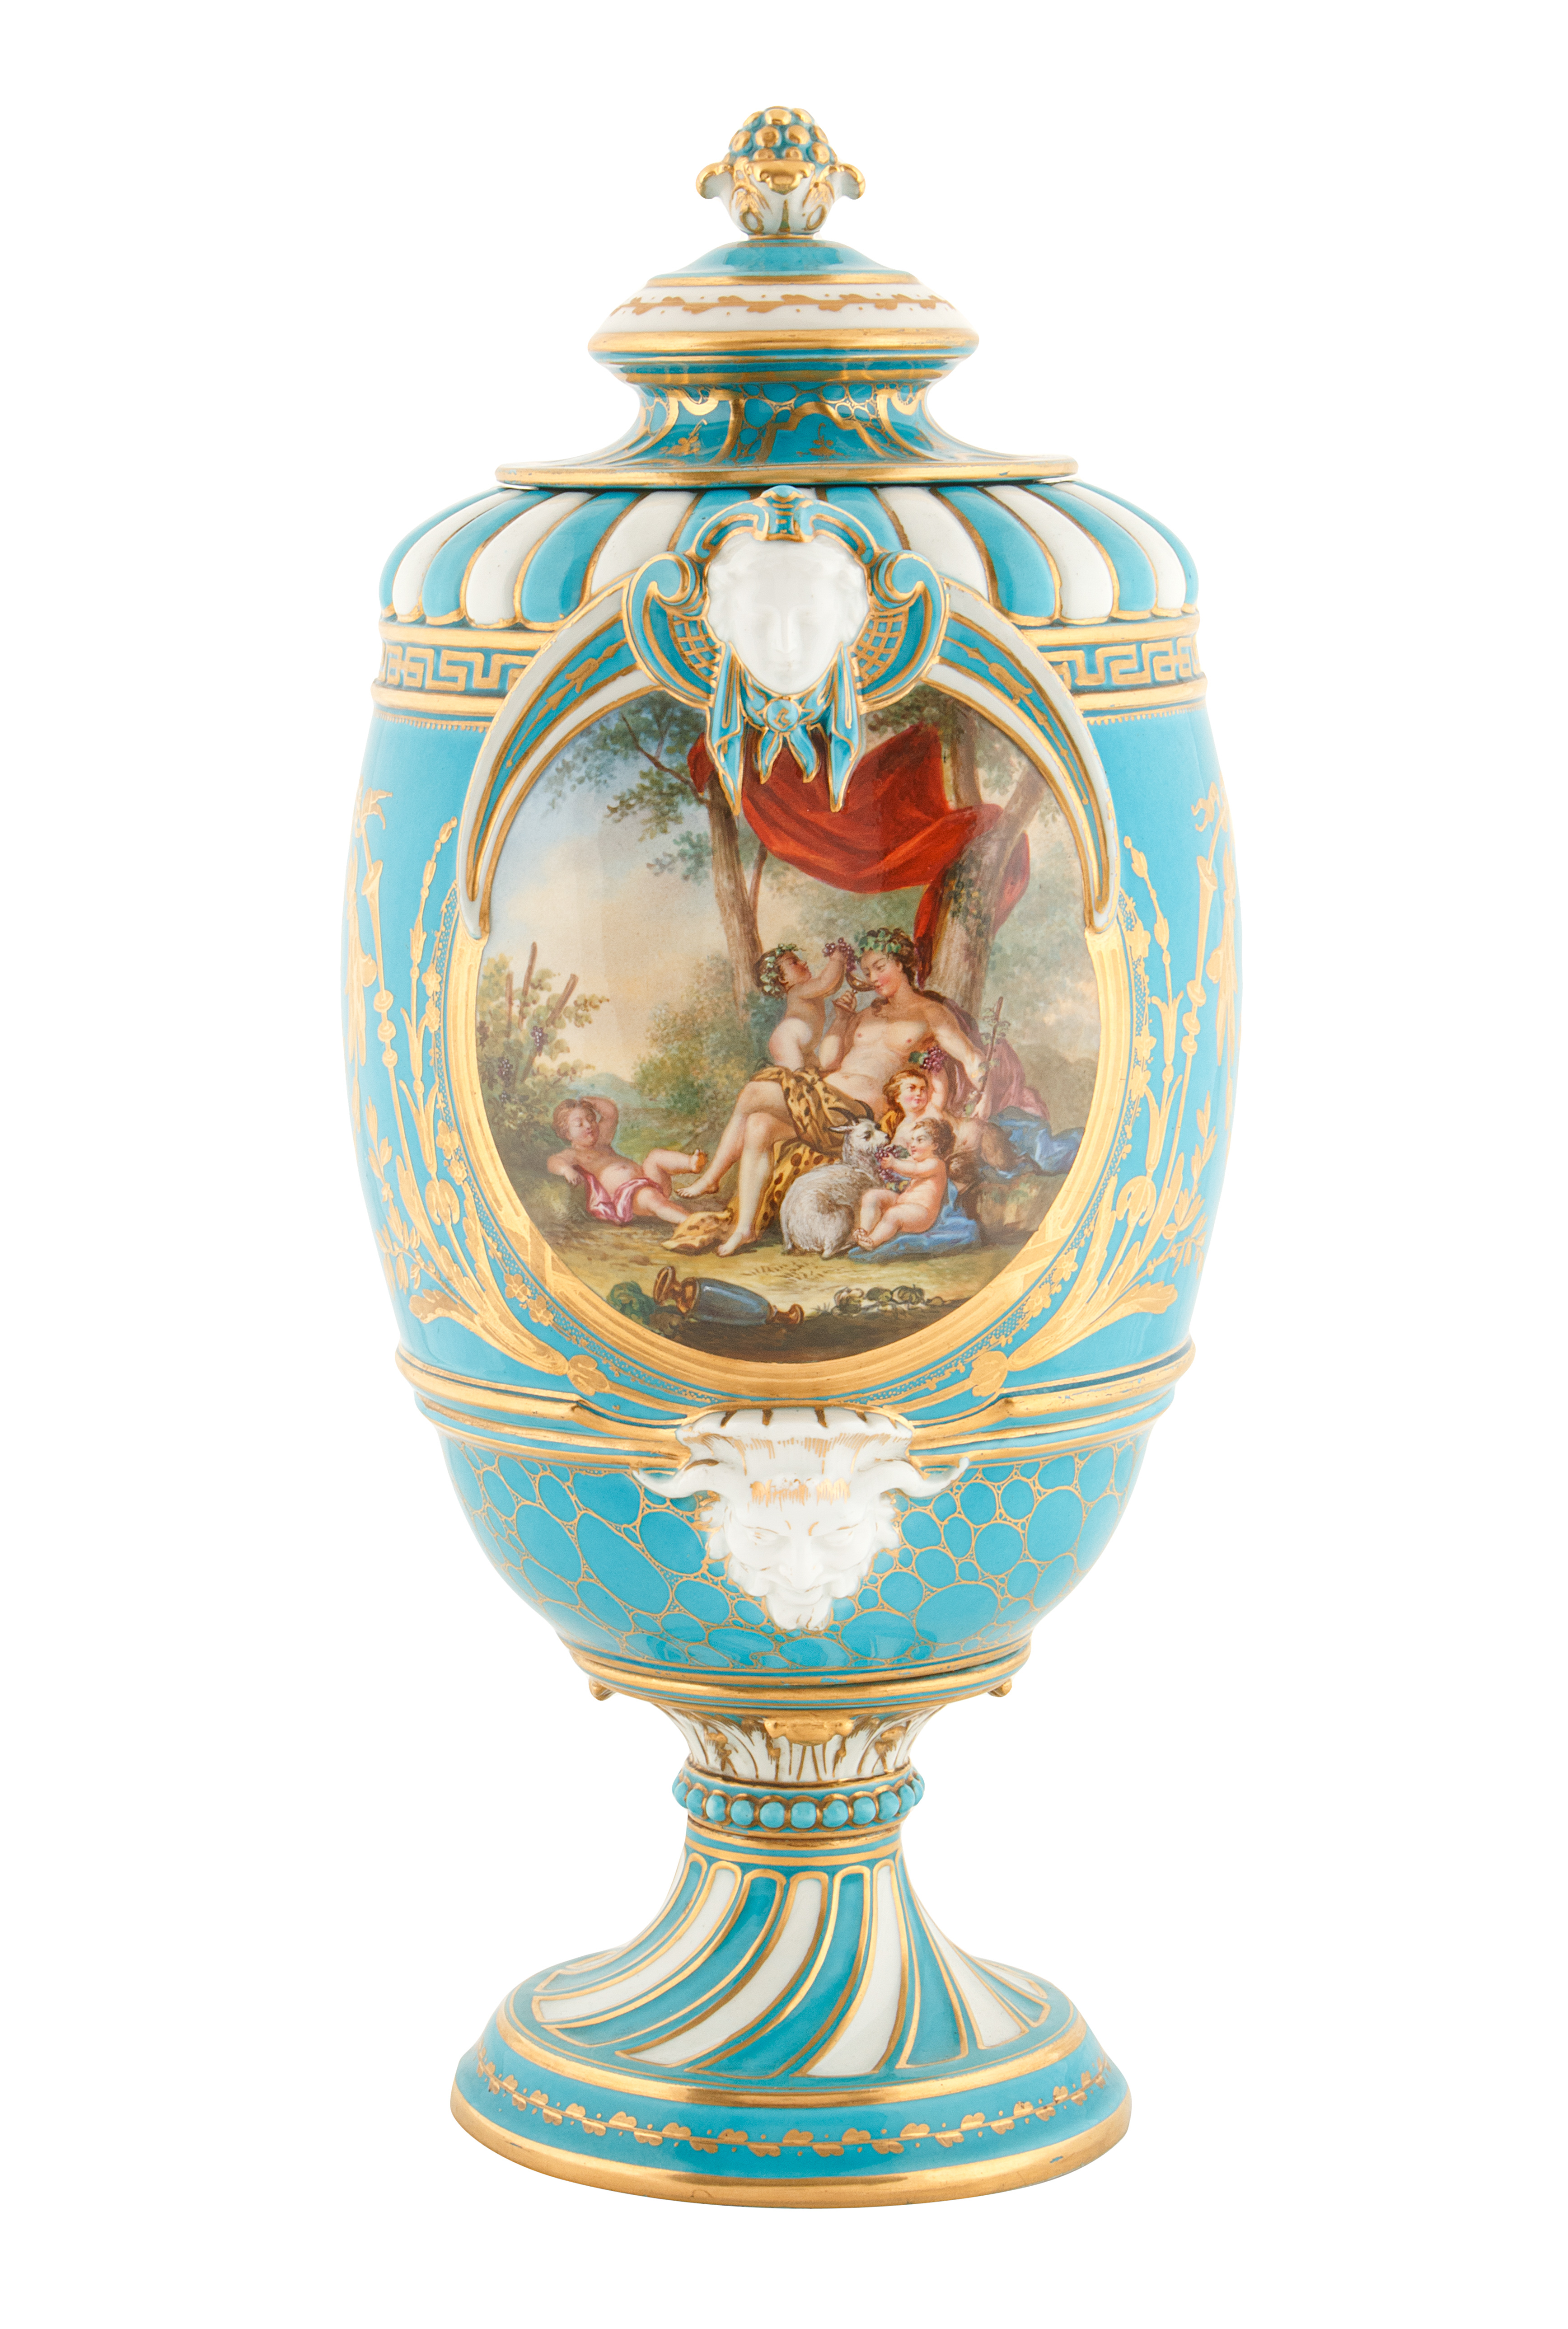 19TH CENTURY FRENCH SEVRE-STYLE PORCELAIN URNS - Image 4 of 6